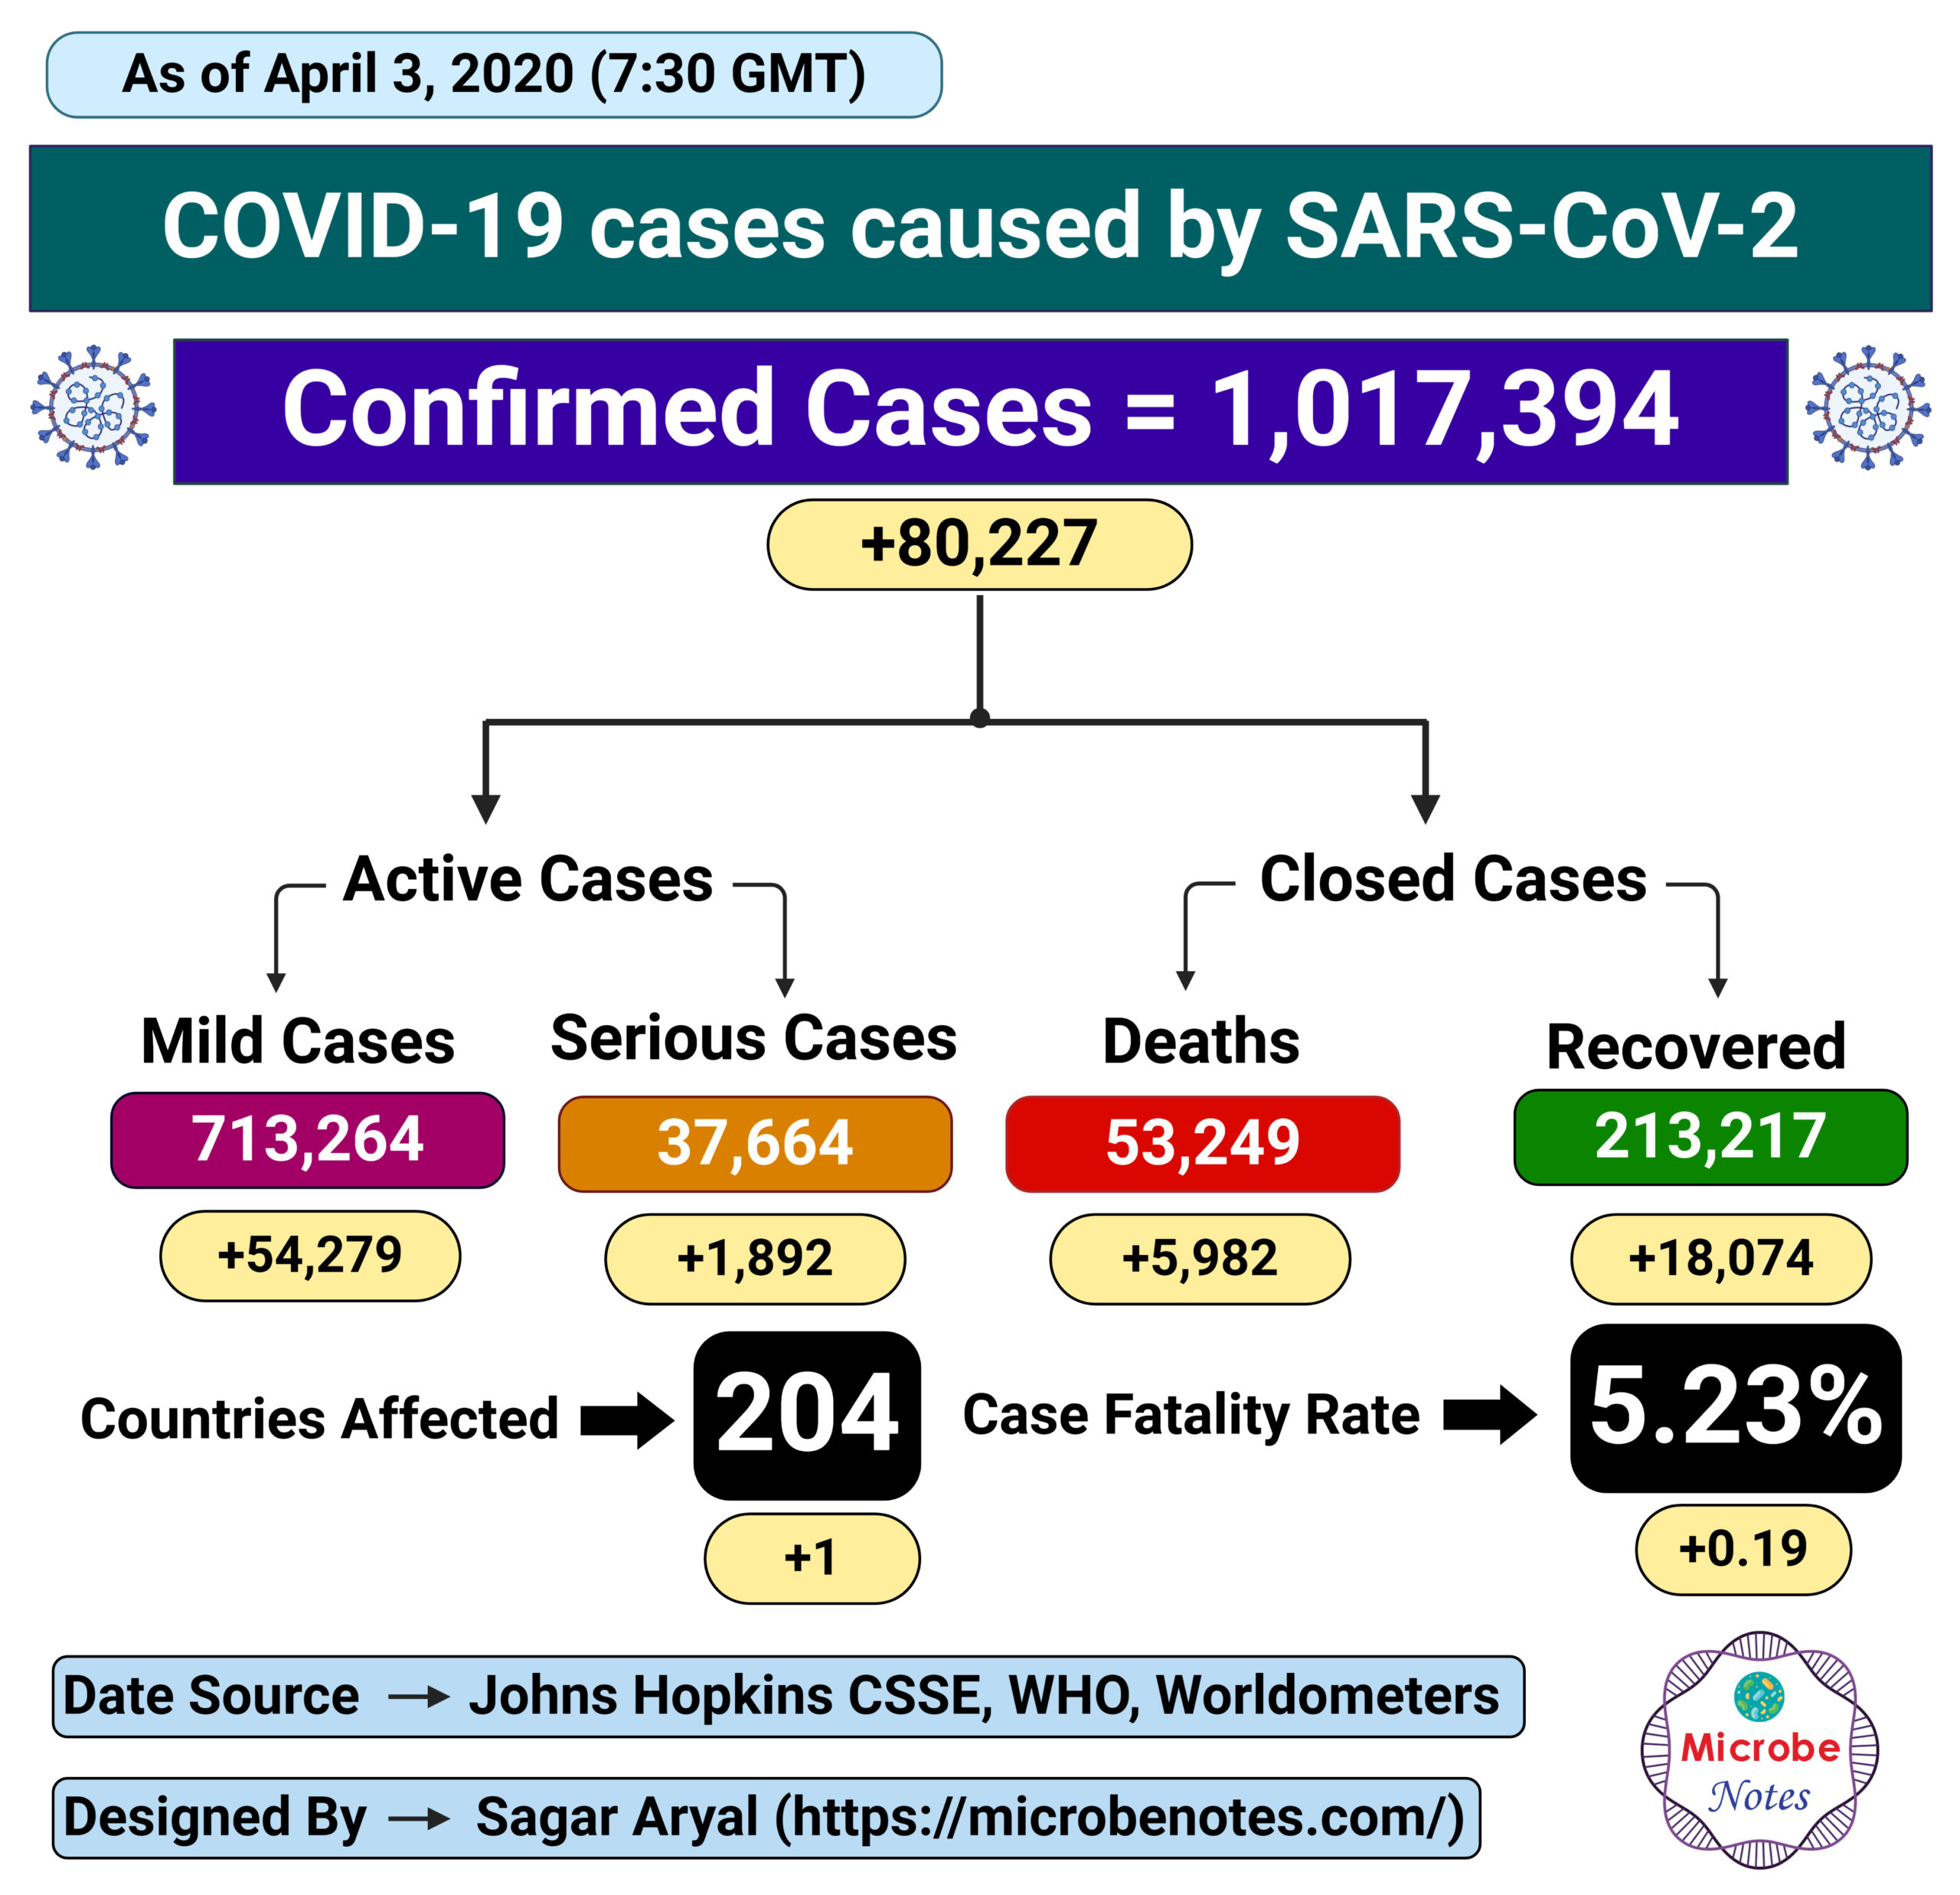 Epidemiology of COVID-19 caused by SARS-CoV-2 as of April 3, 2020